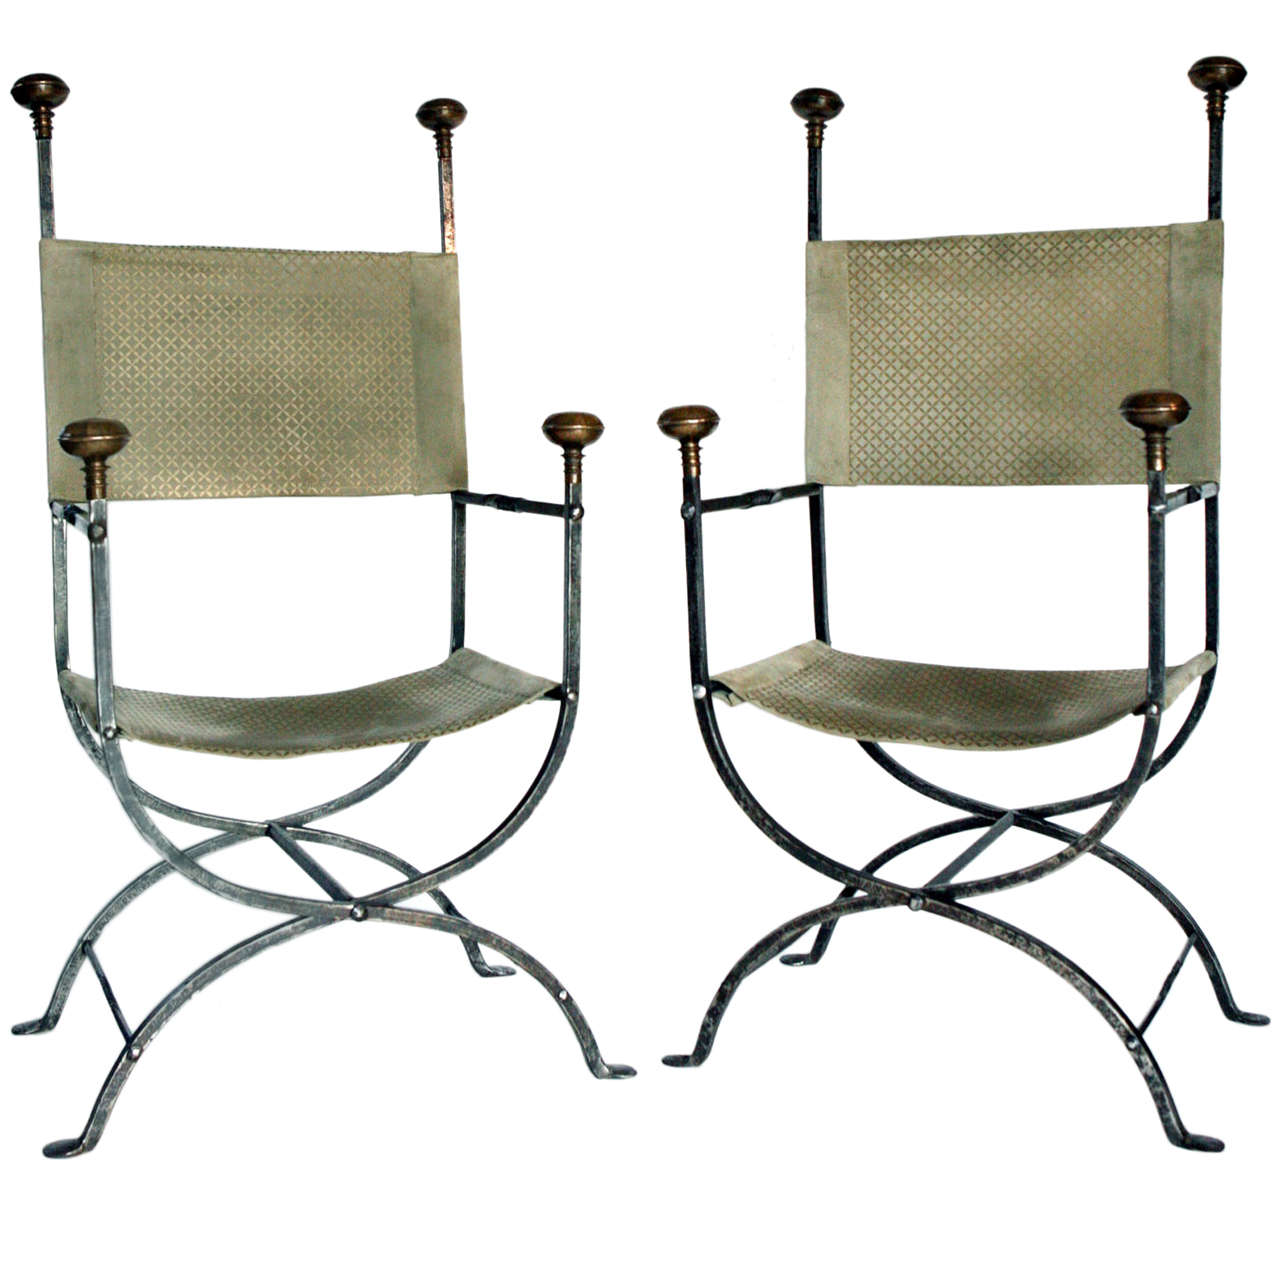 Pair of Italian Steel and Bronze Chairs